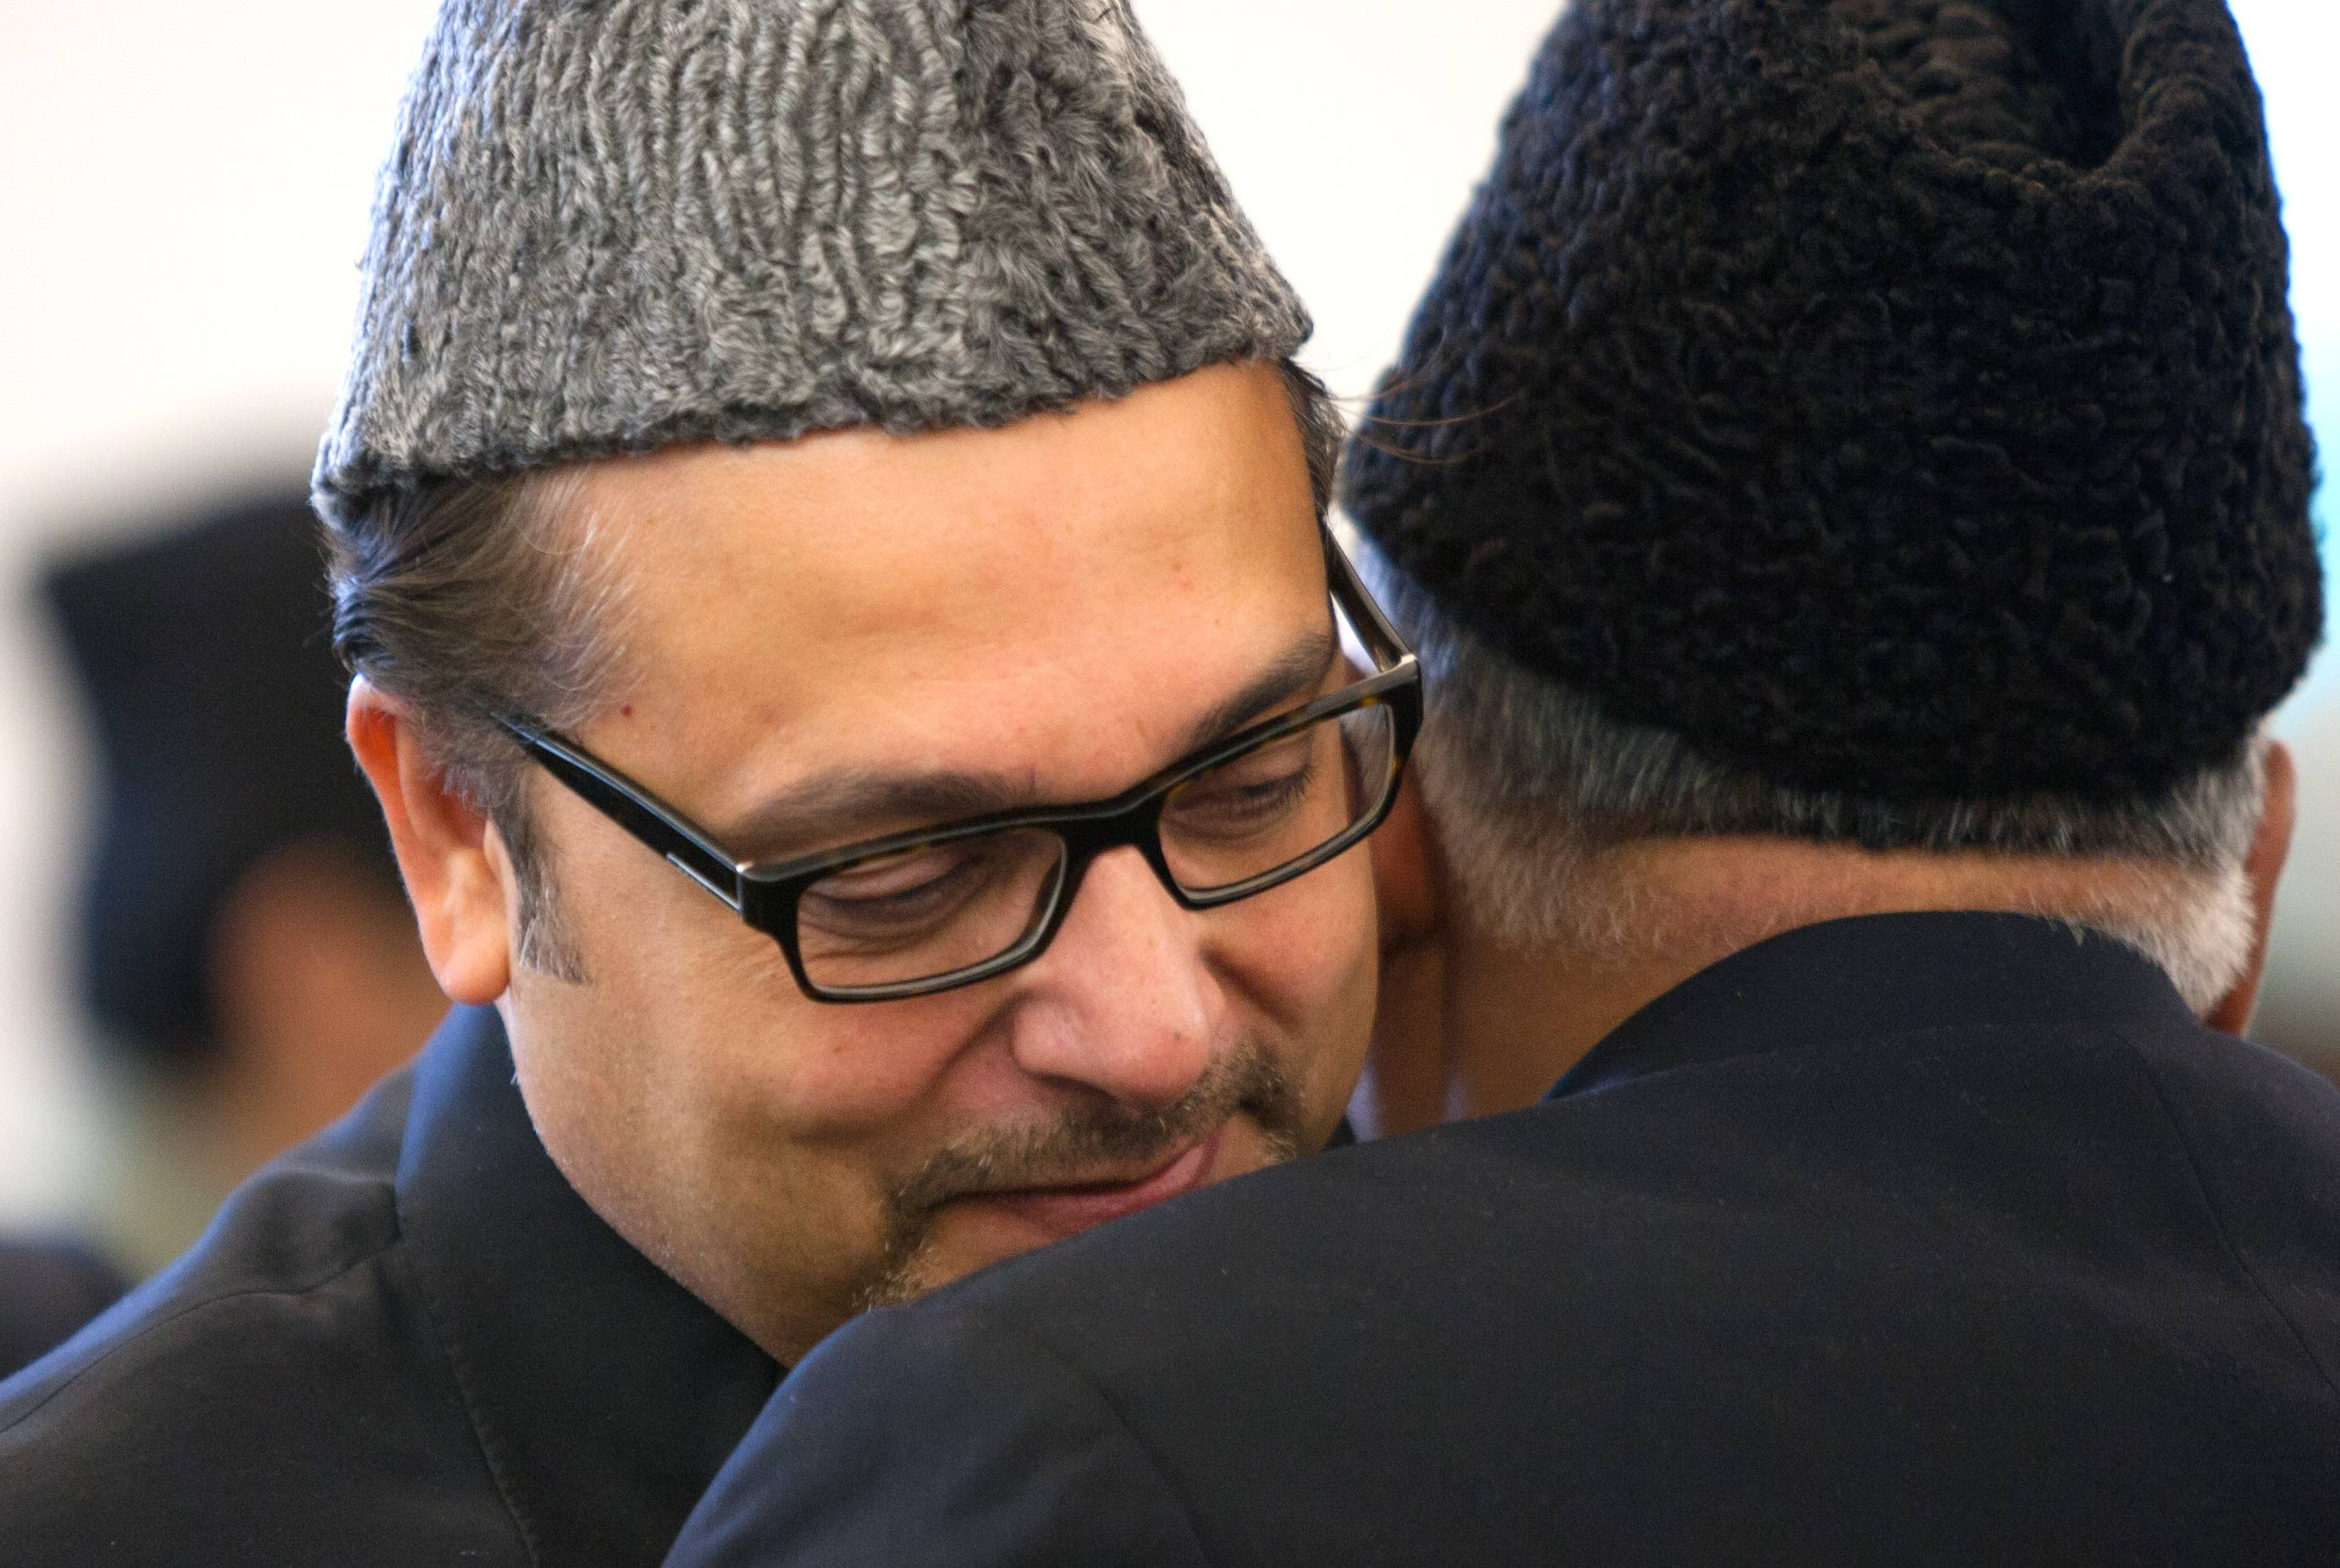 Haris Ahmed, director of public affairs of the Chicago West Chapter, greets a fellow worshipper as the Ahmadiyya Muslim Community celebrates the end of Ramadan.